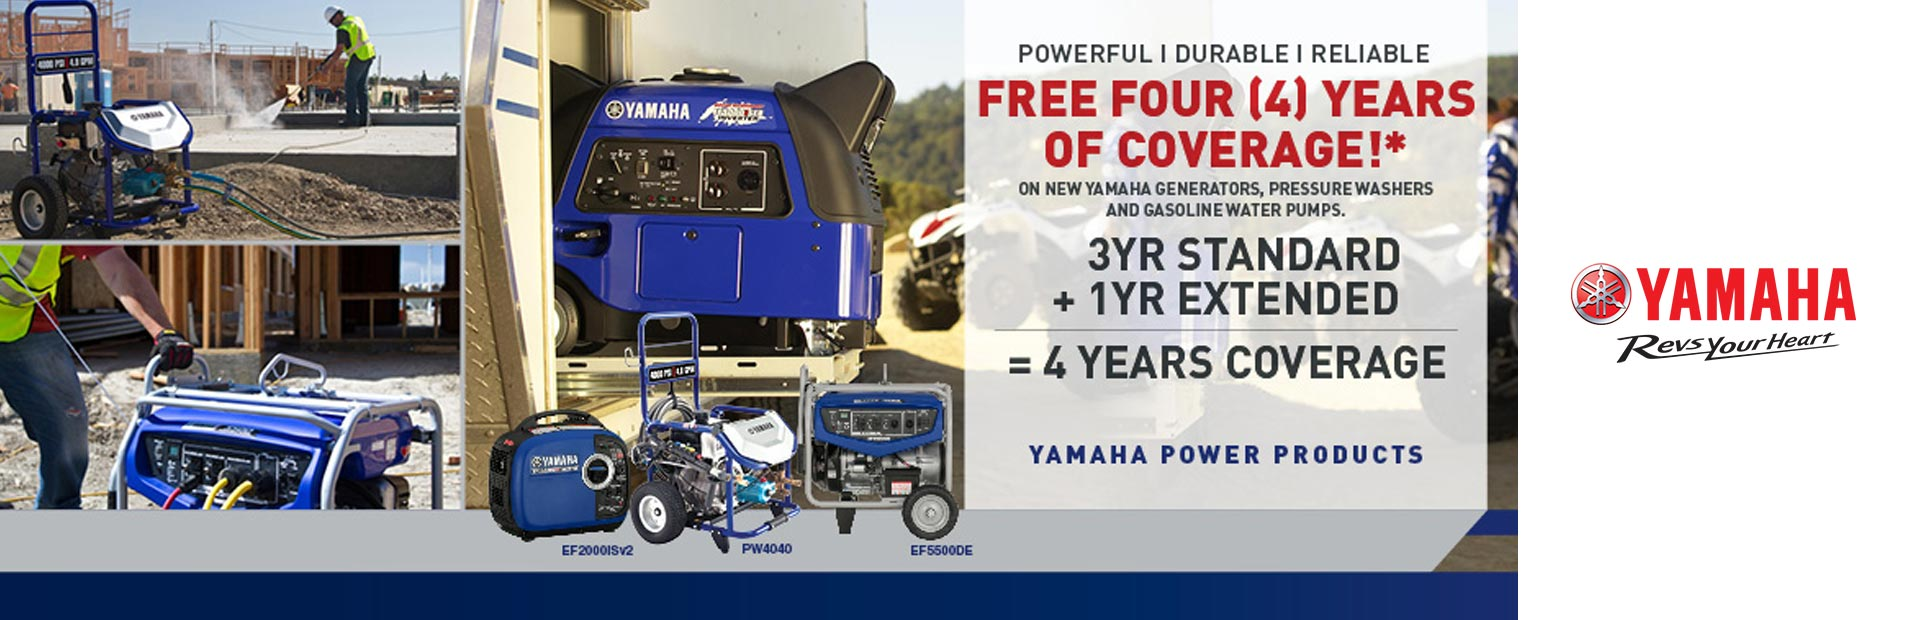 Yamaha: Free One Year Extended Warranty